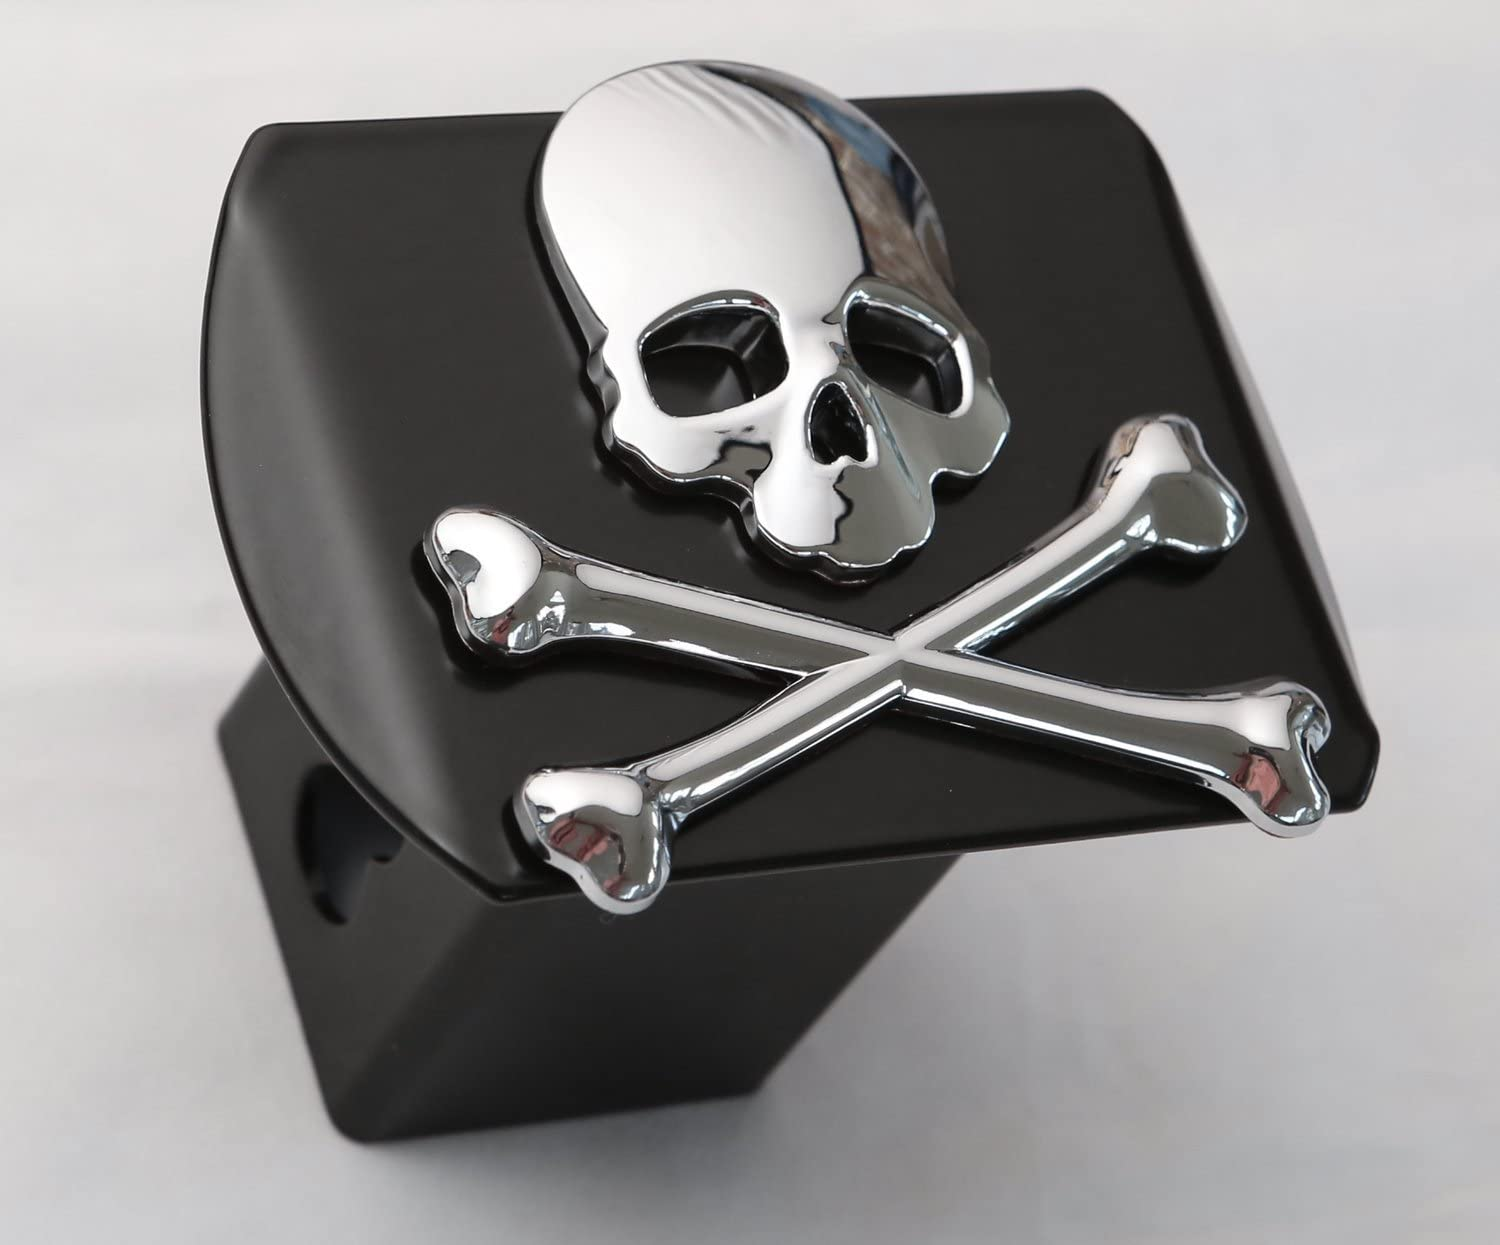 Chrome on Black LFPartS 100/% Metal Skull 3D Emblem Trailer Hitch Cover Fits 2 Receivers